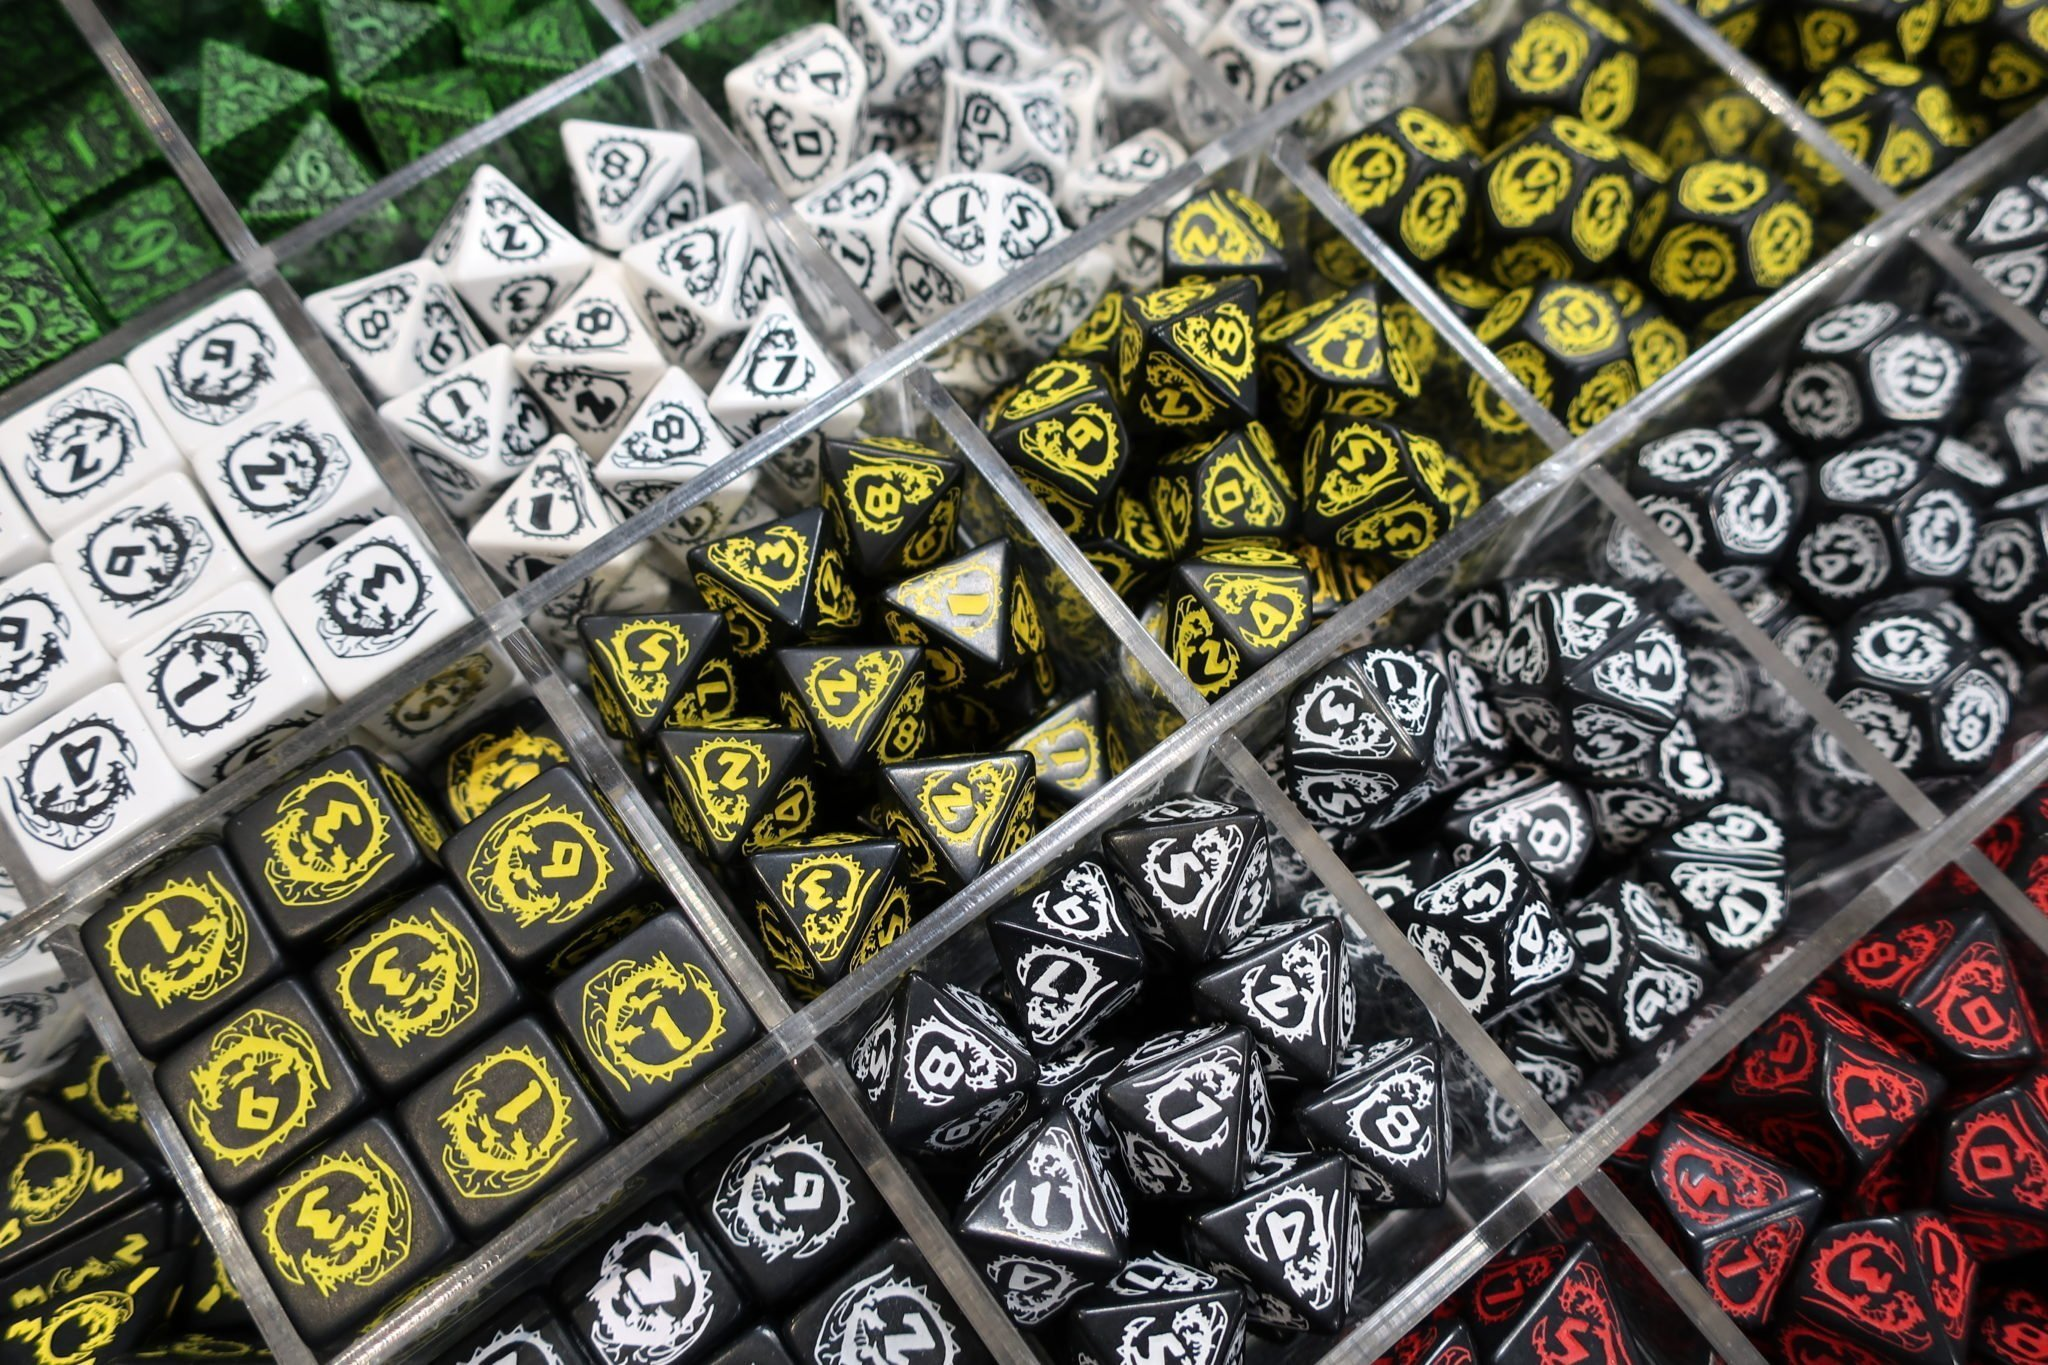 Some lovely dice